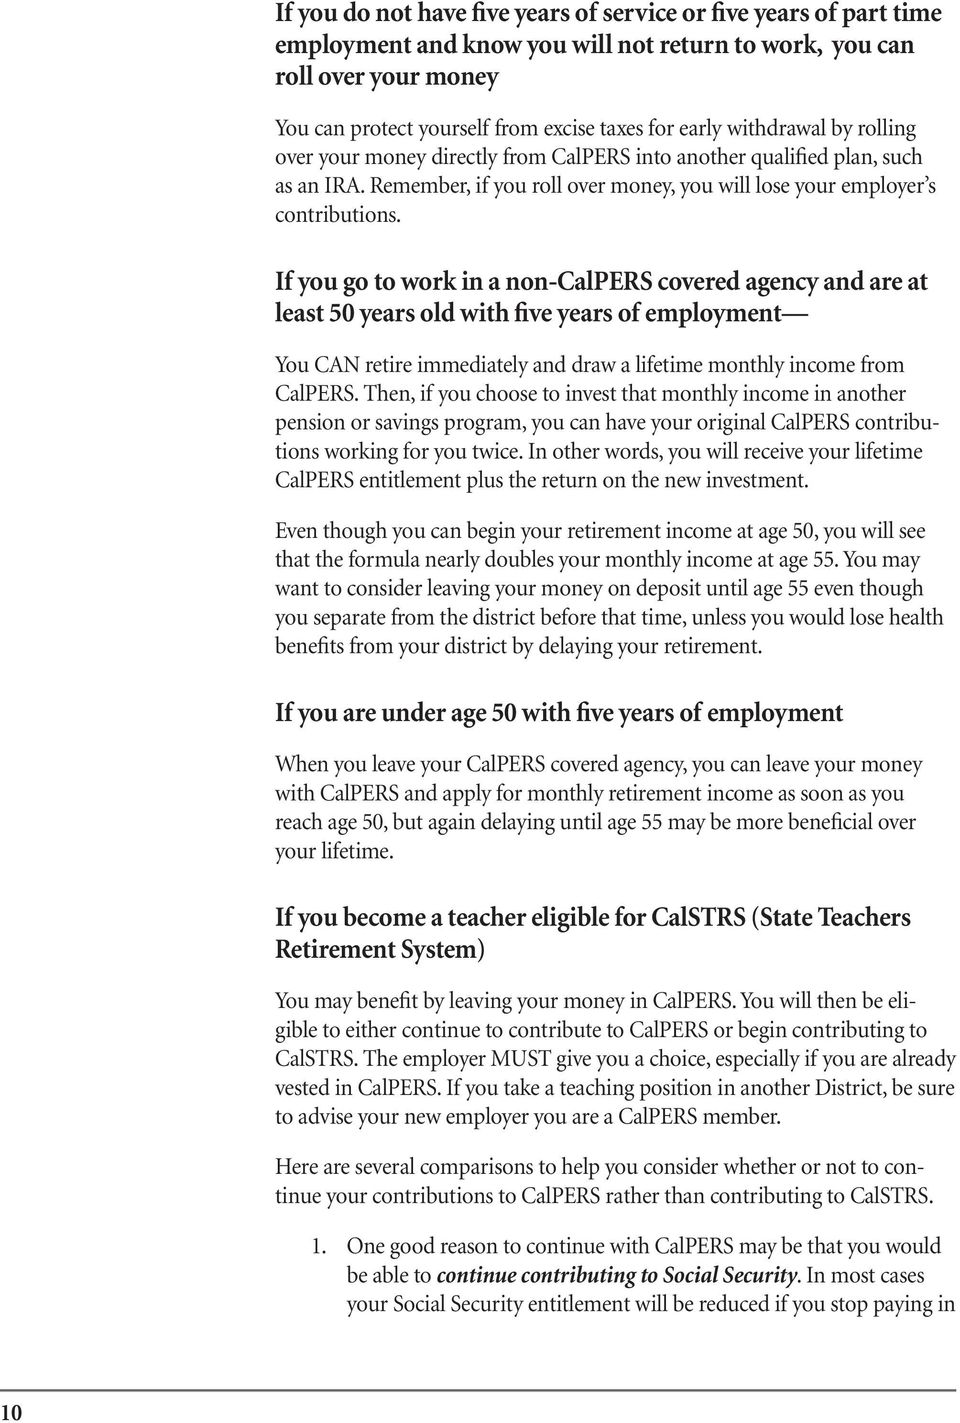 If you go to work in a non-calpers covered agency and are at least 50 years old with five years of employment You CAN retire immediately and draw a lifetime monthly income from CalPERS.